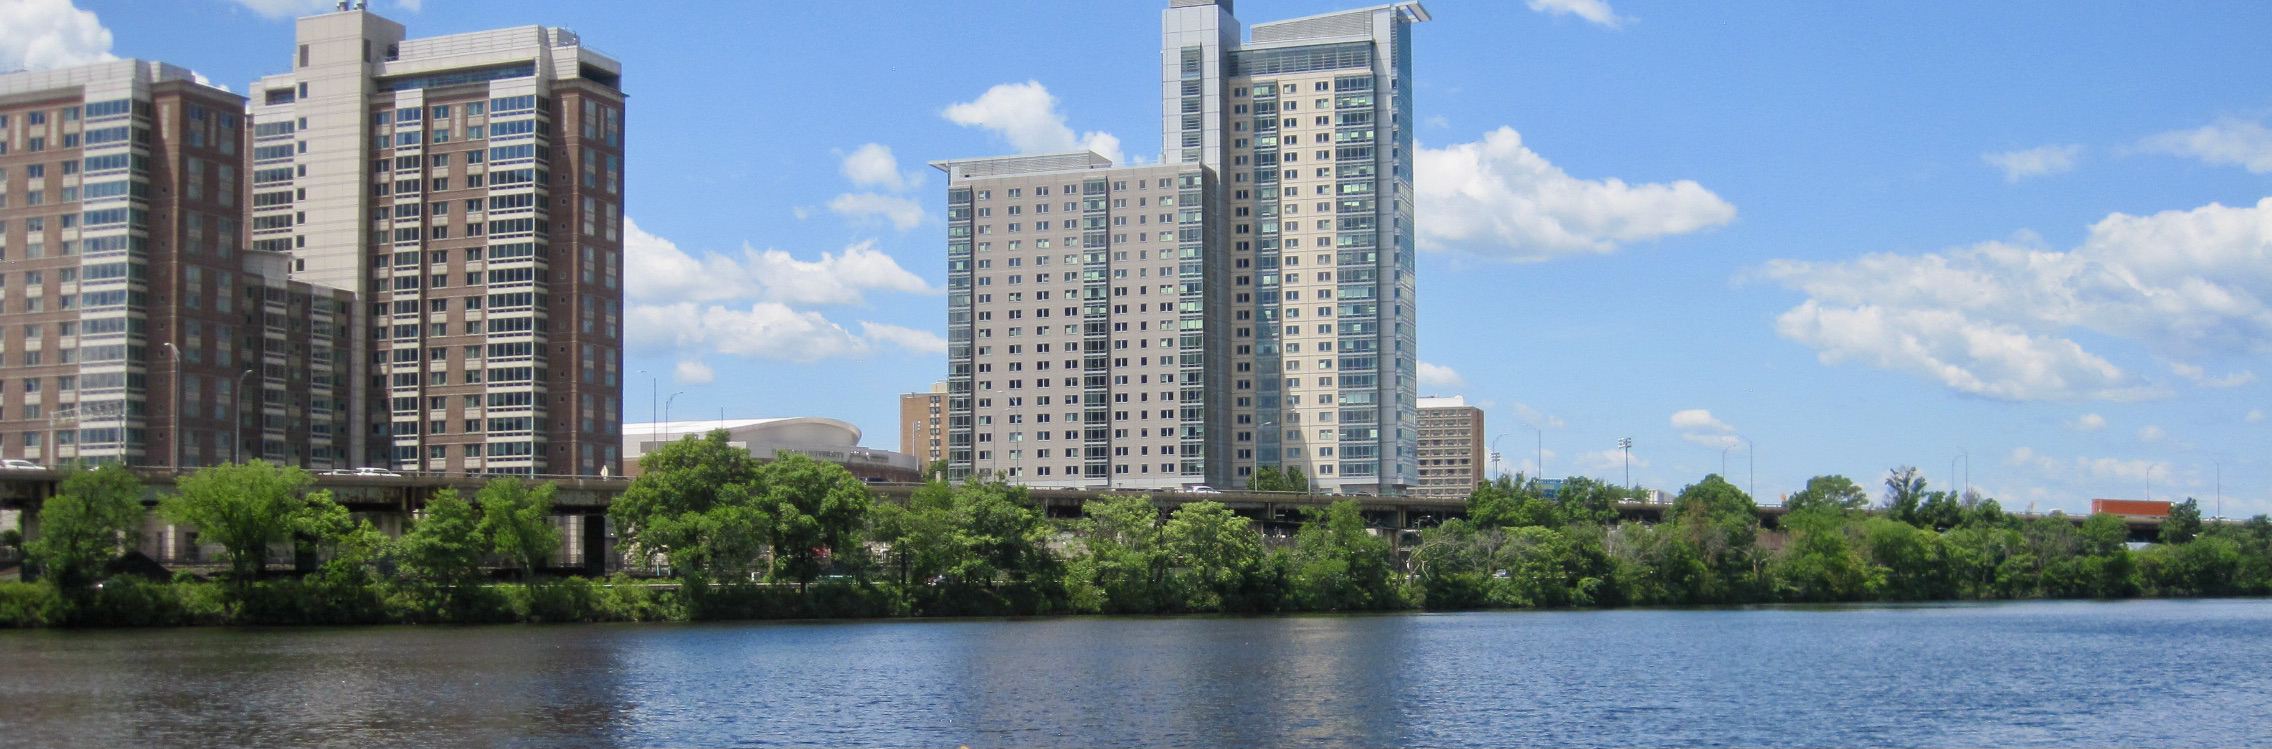 View of the Charles from Magazine Beach in Cambridgeport